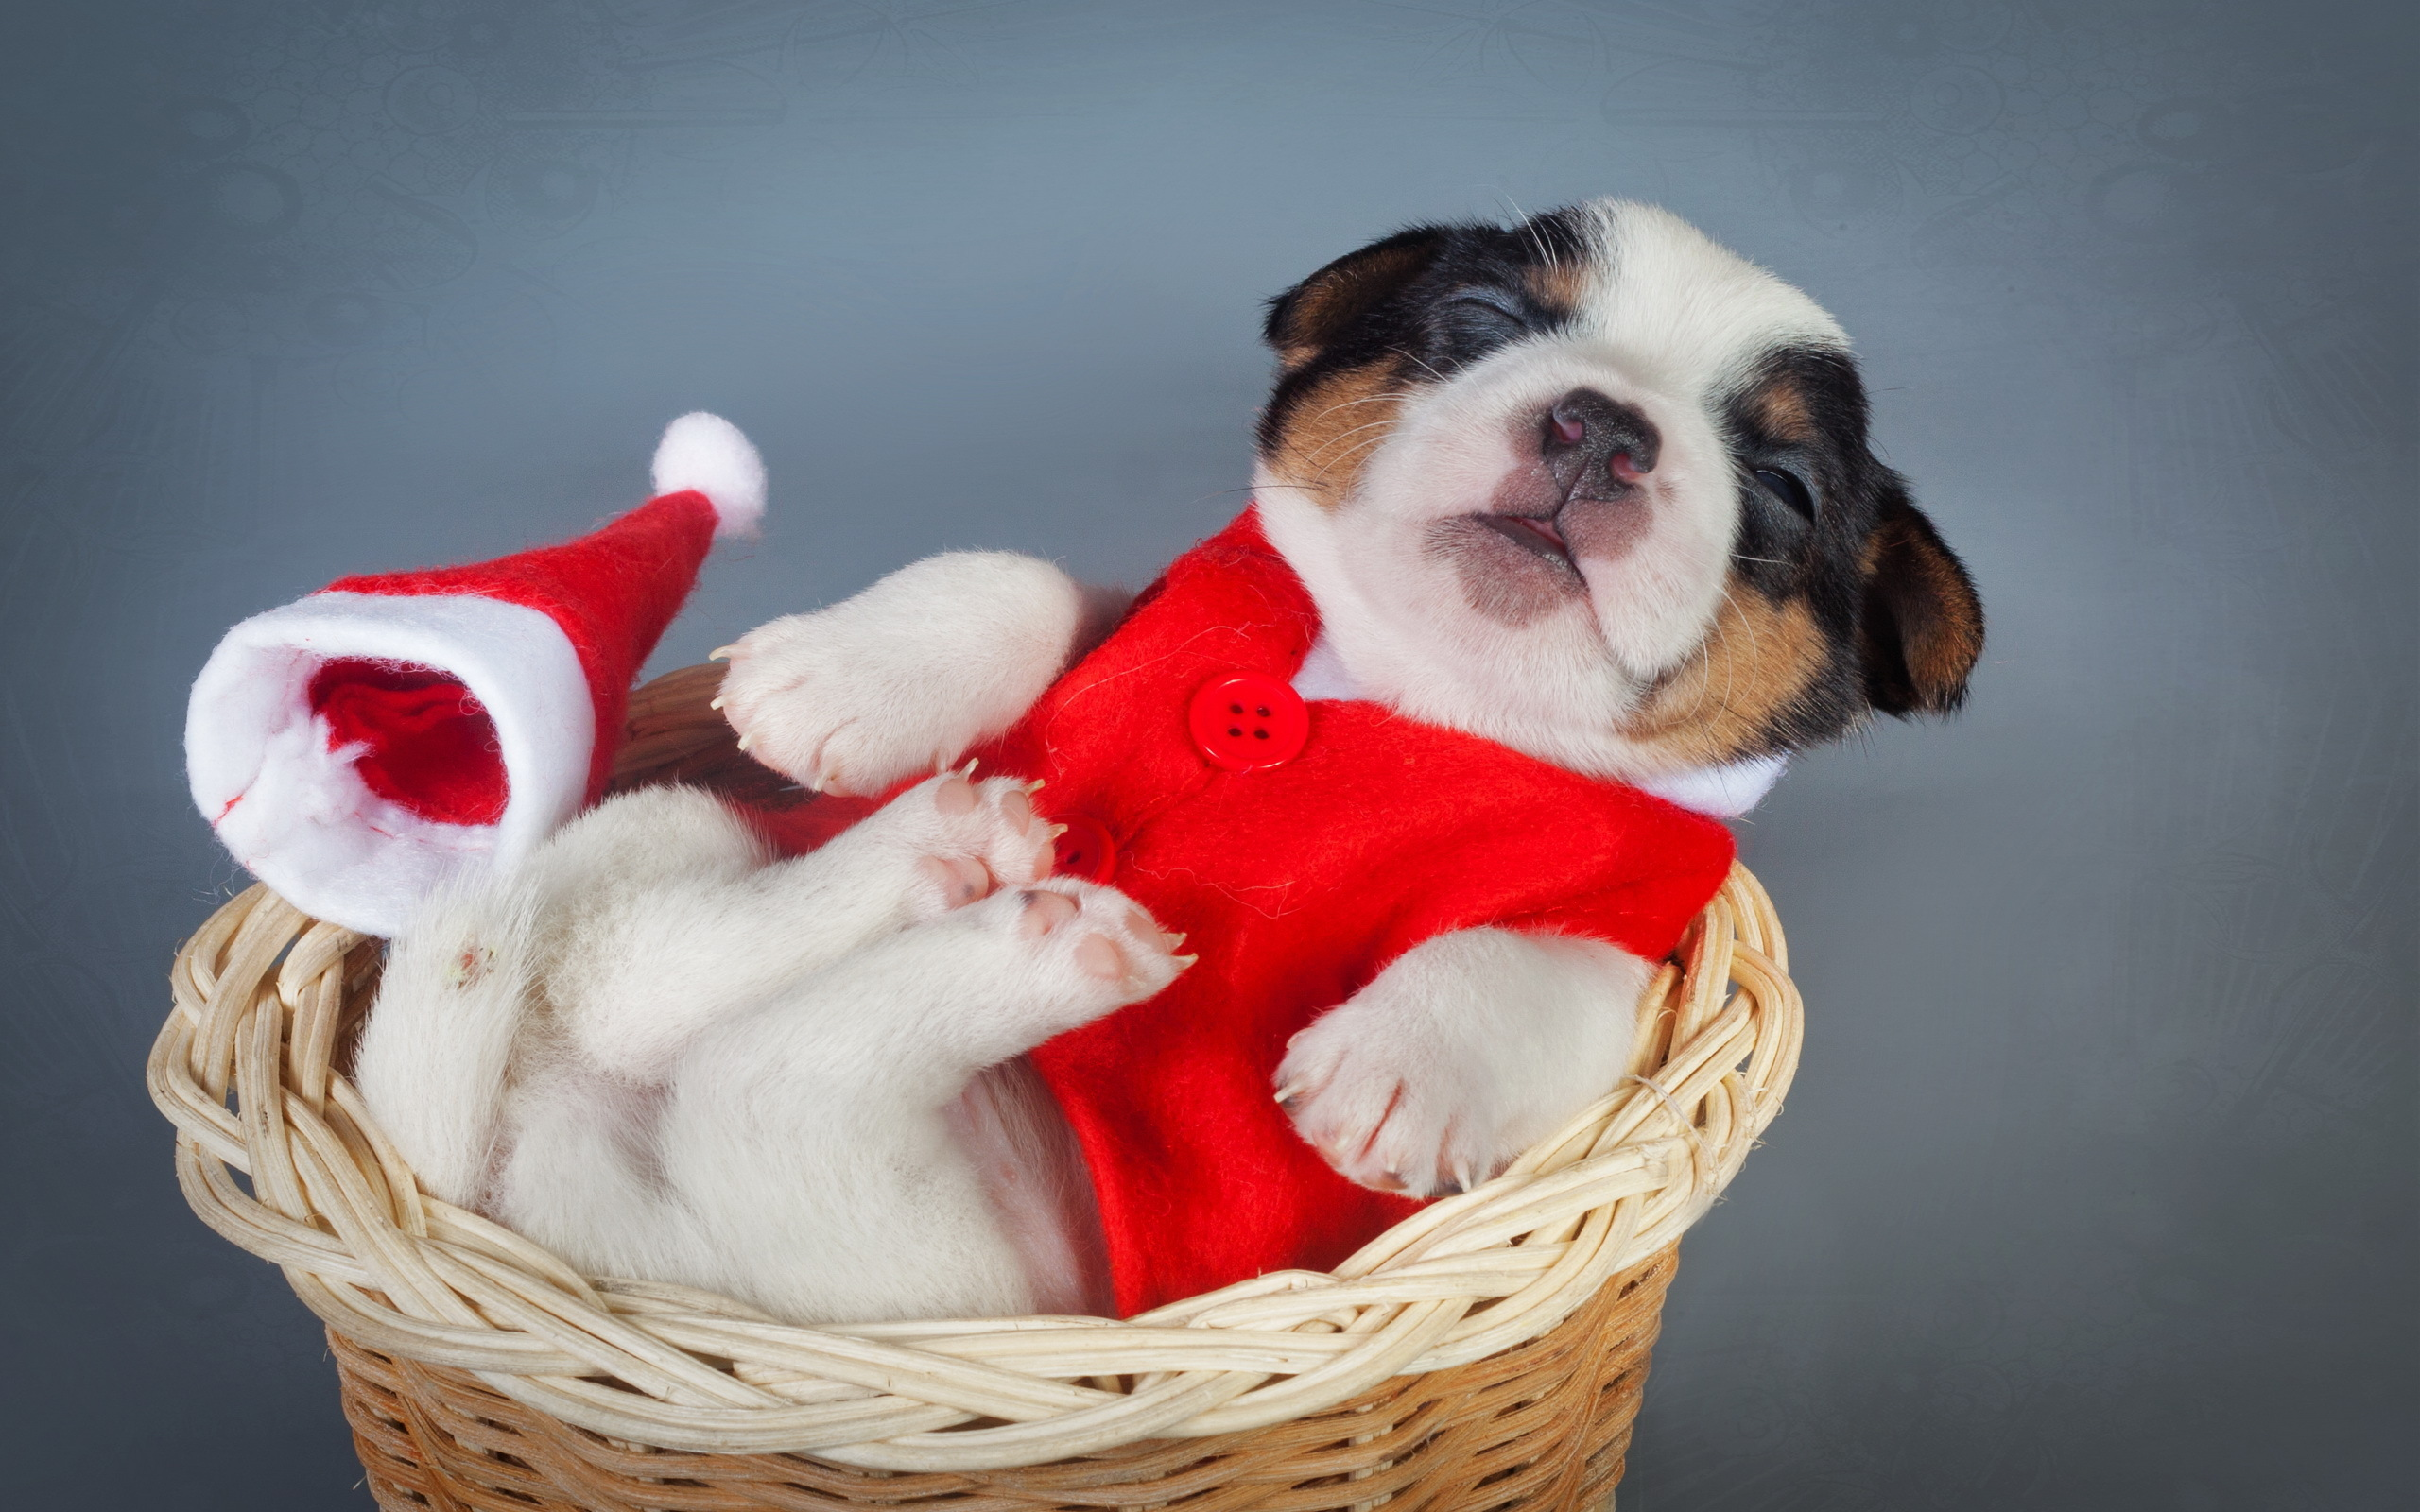 dogs-christmas-new-year-puppy-animals-wallpaper-1.jpg